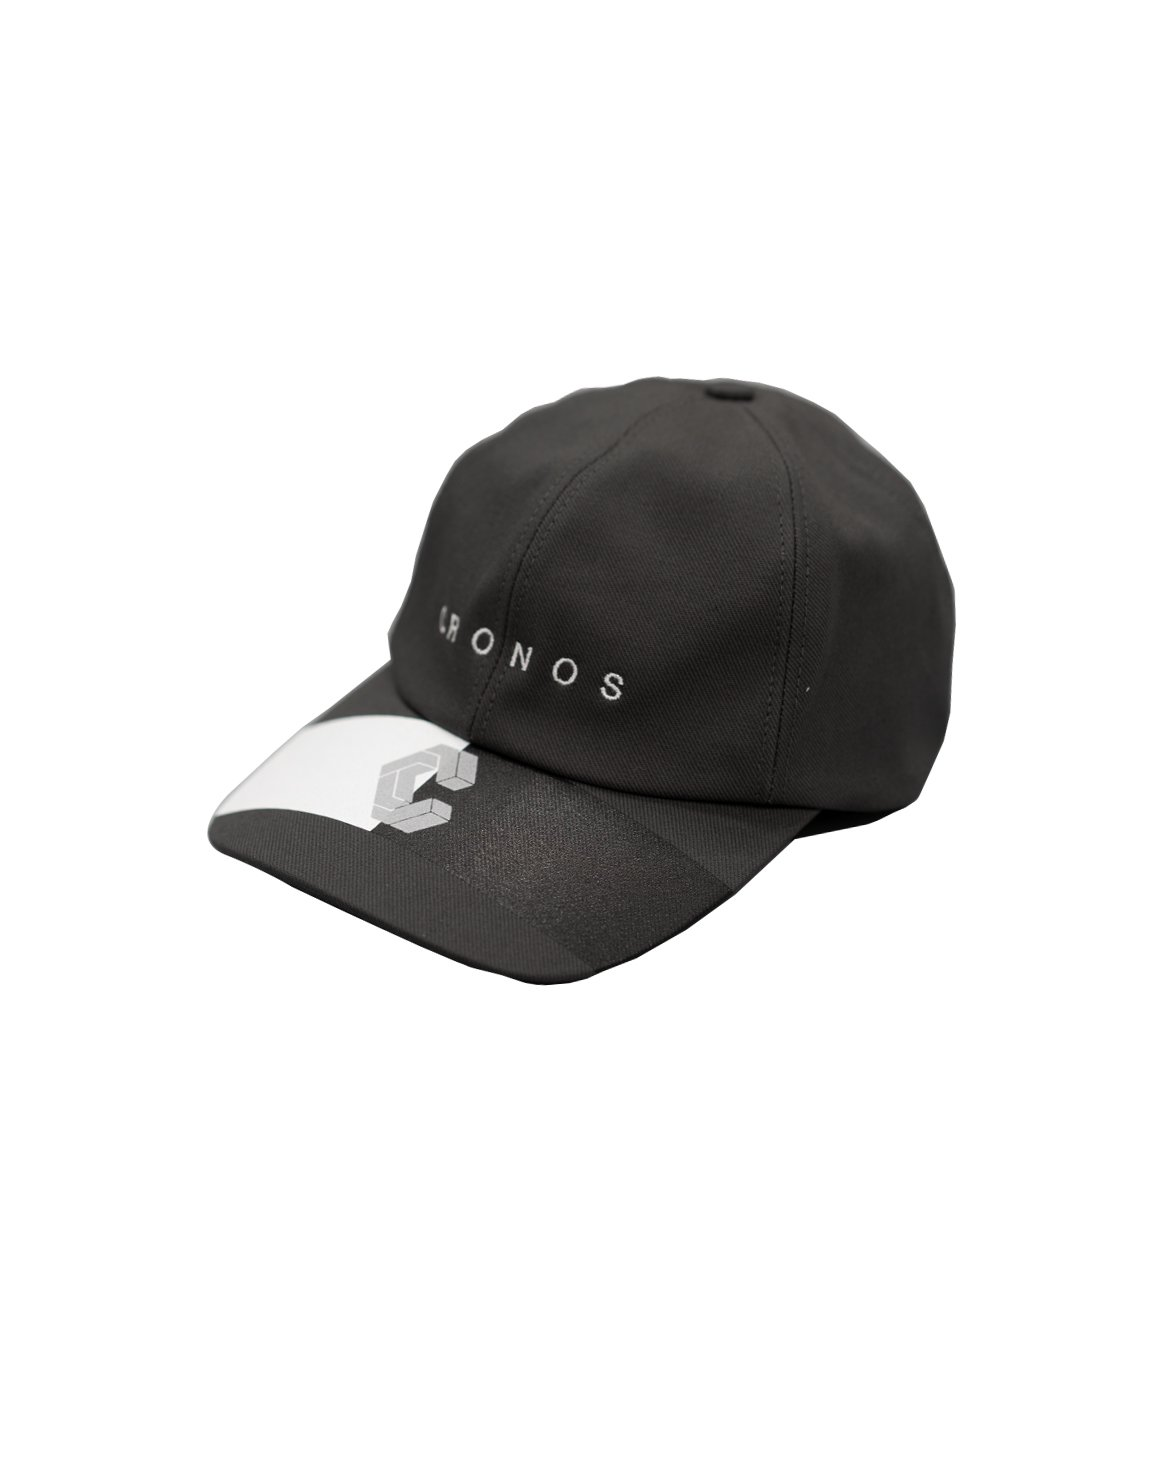 CRONOS HALF COLOR CAP 【BLACK】